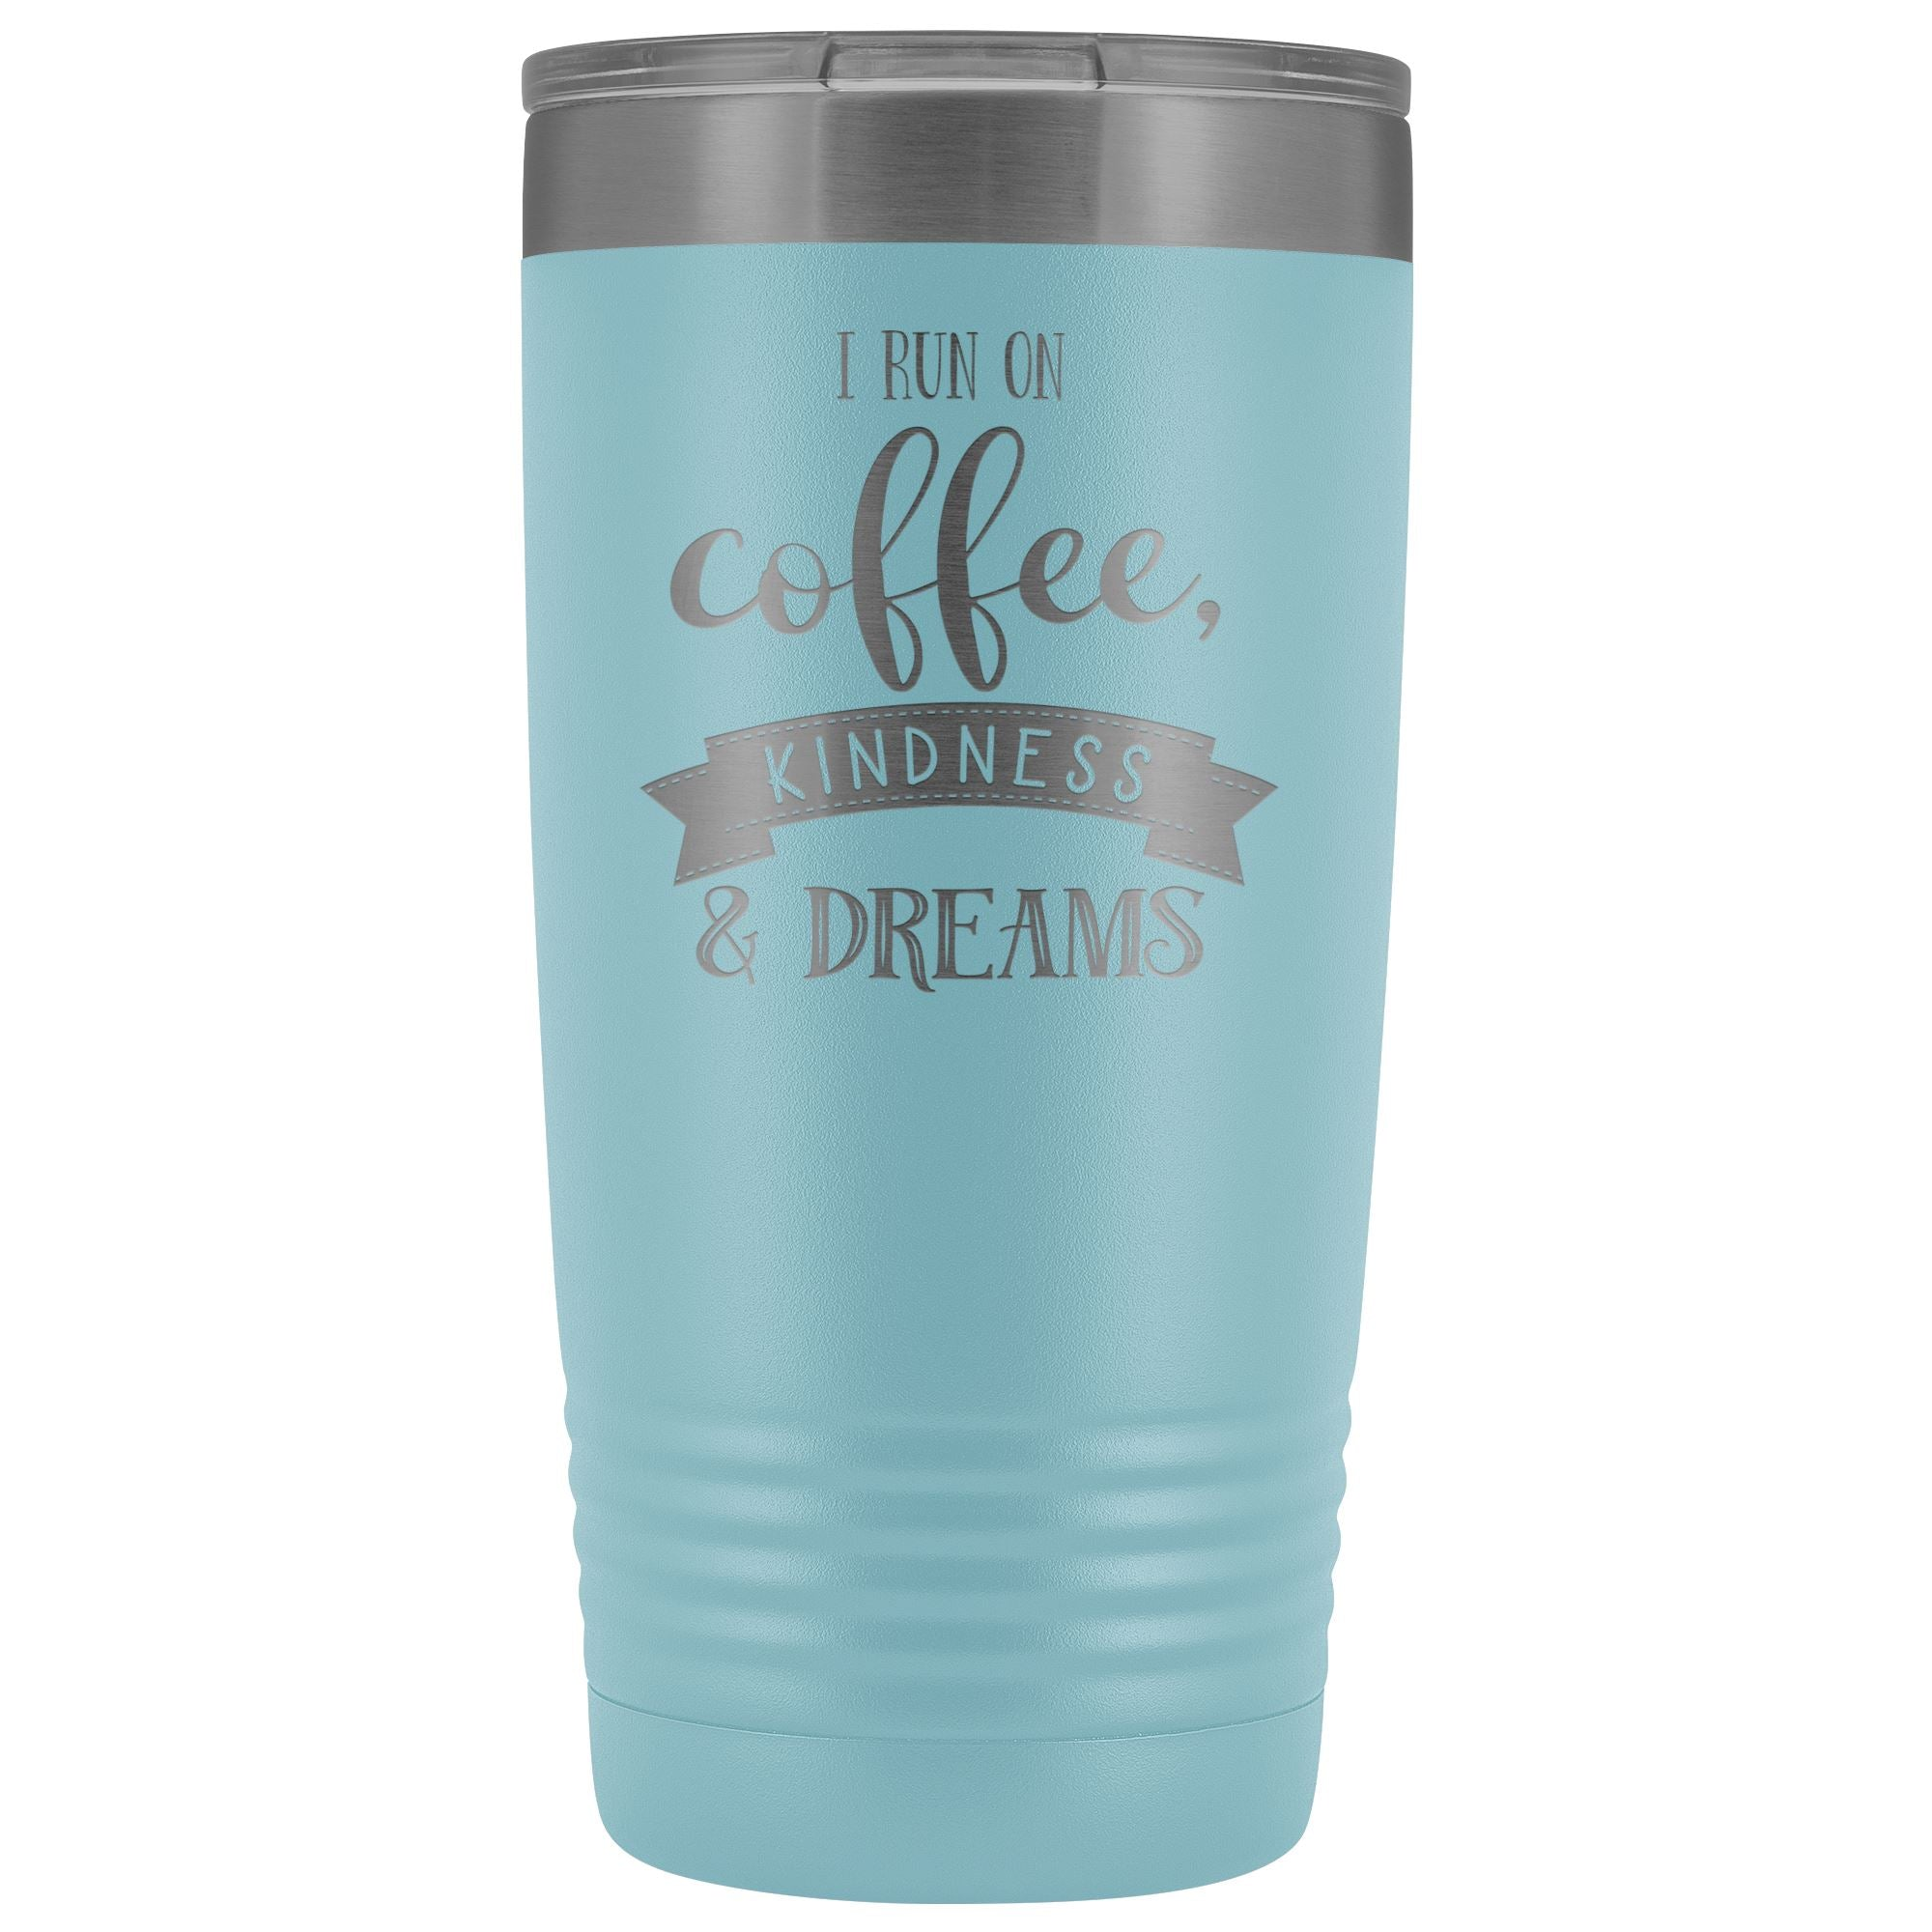 I Run On Coffee, Kindness & Dreams, 20oz Insulated Coffee Tumbler, travel mug, coffee lovers